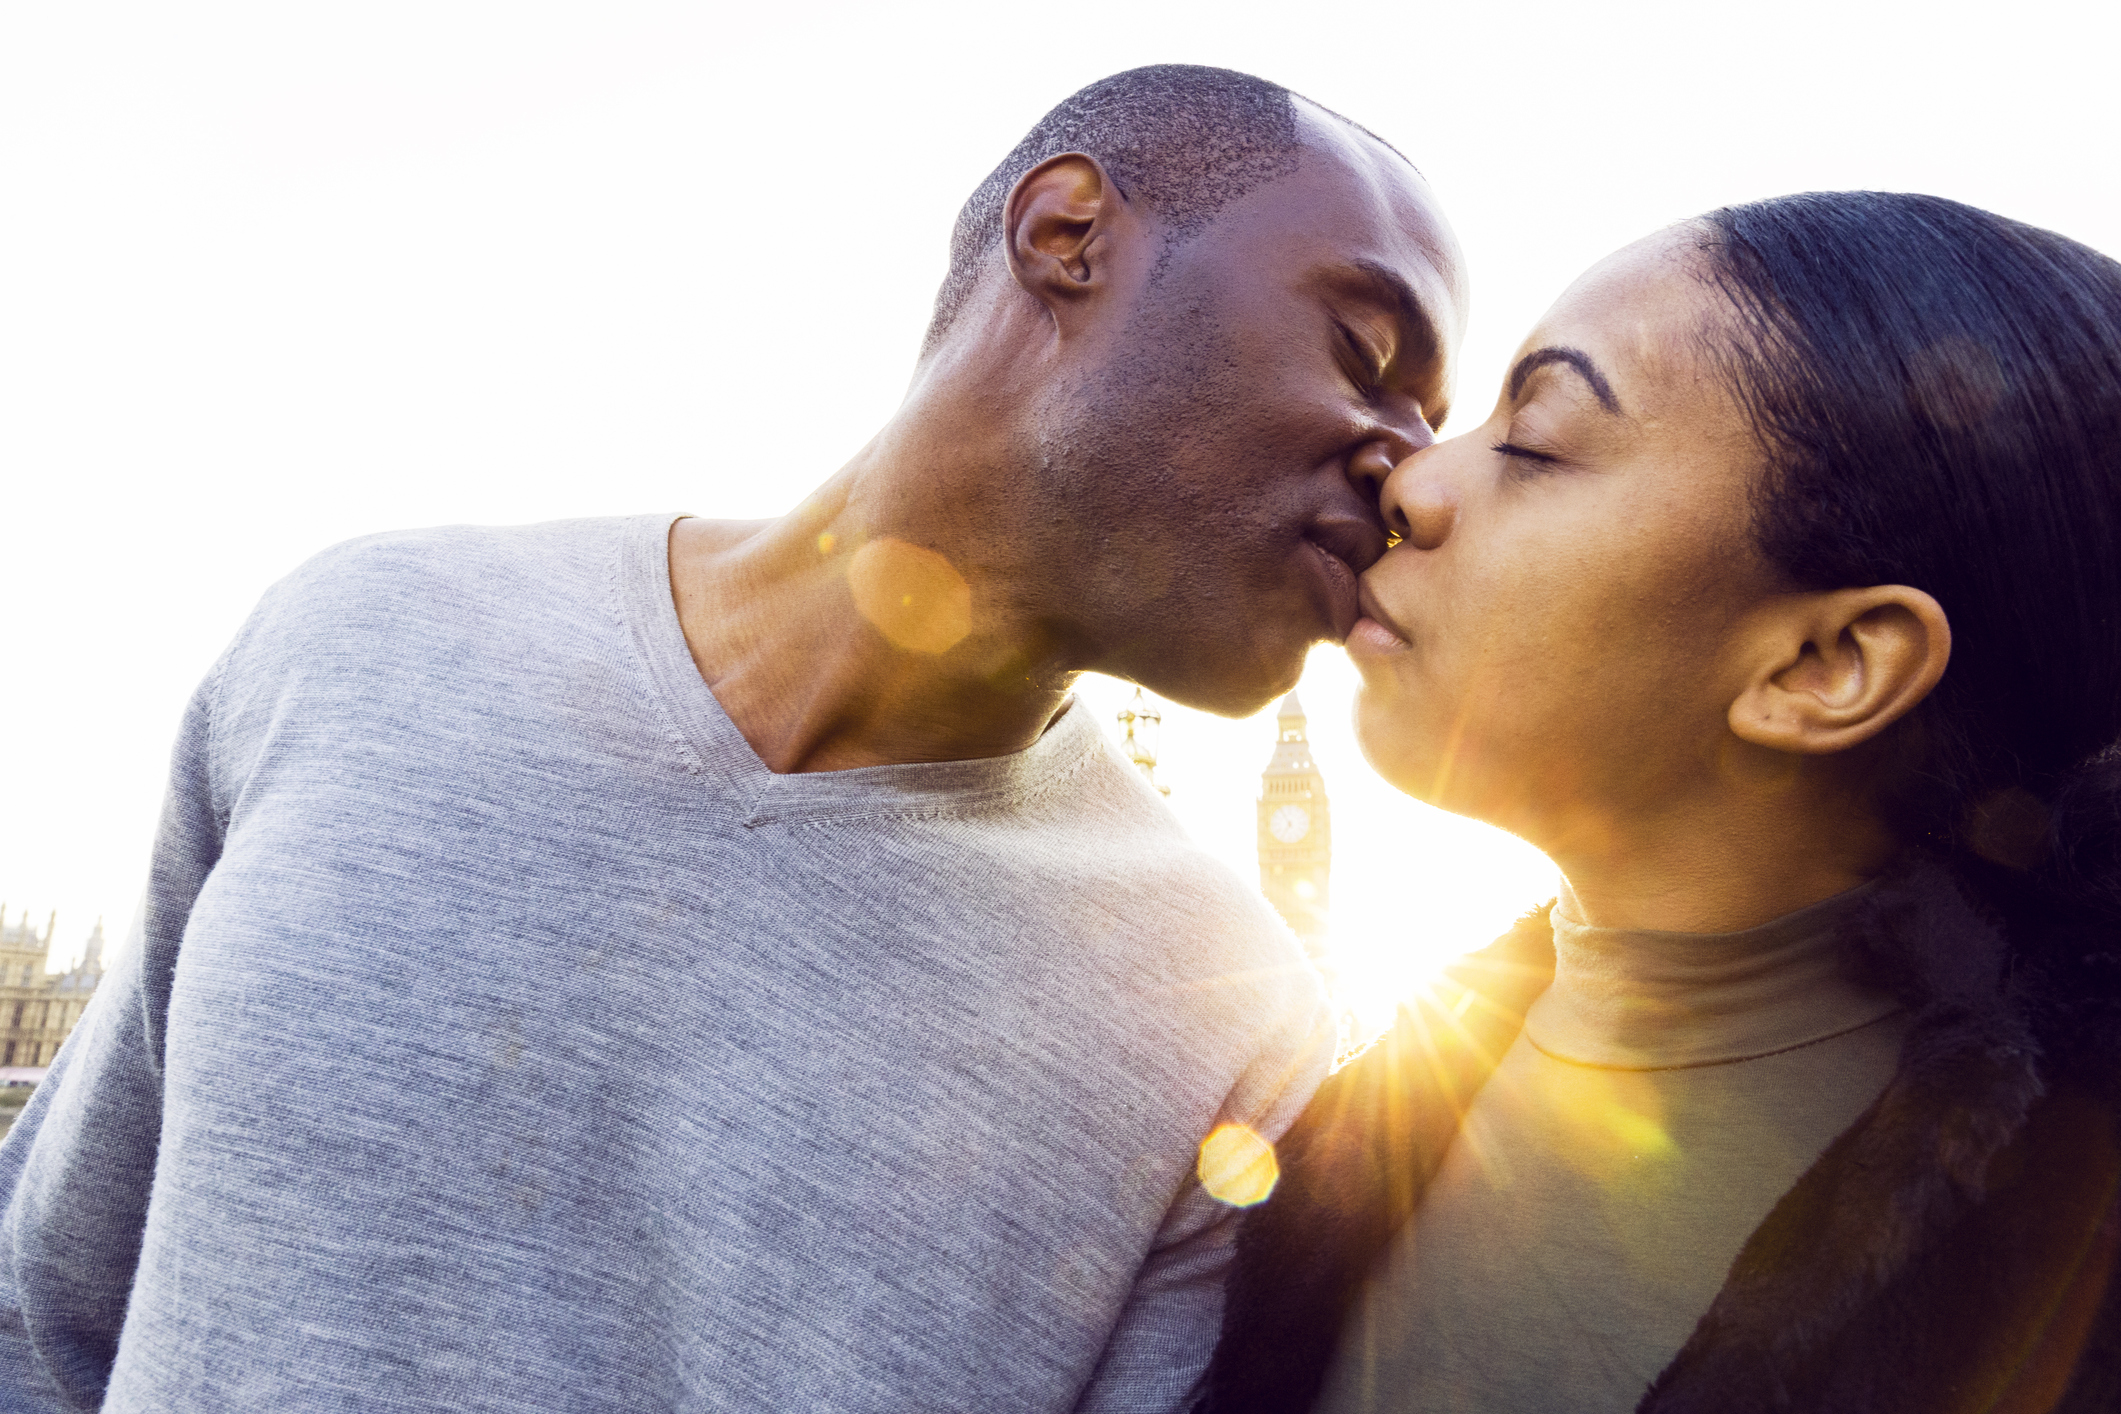 Couple kiss with the setting sun in the background